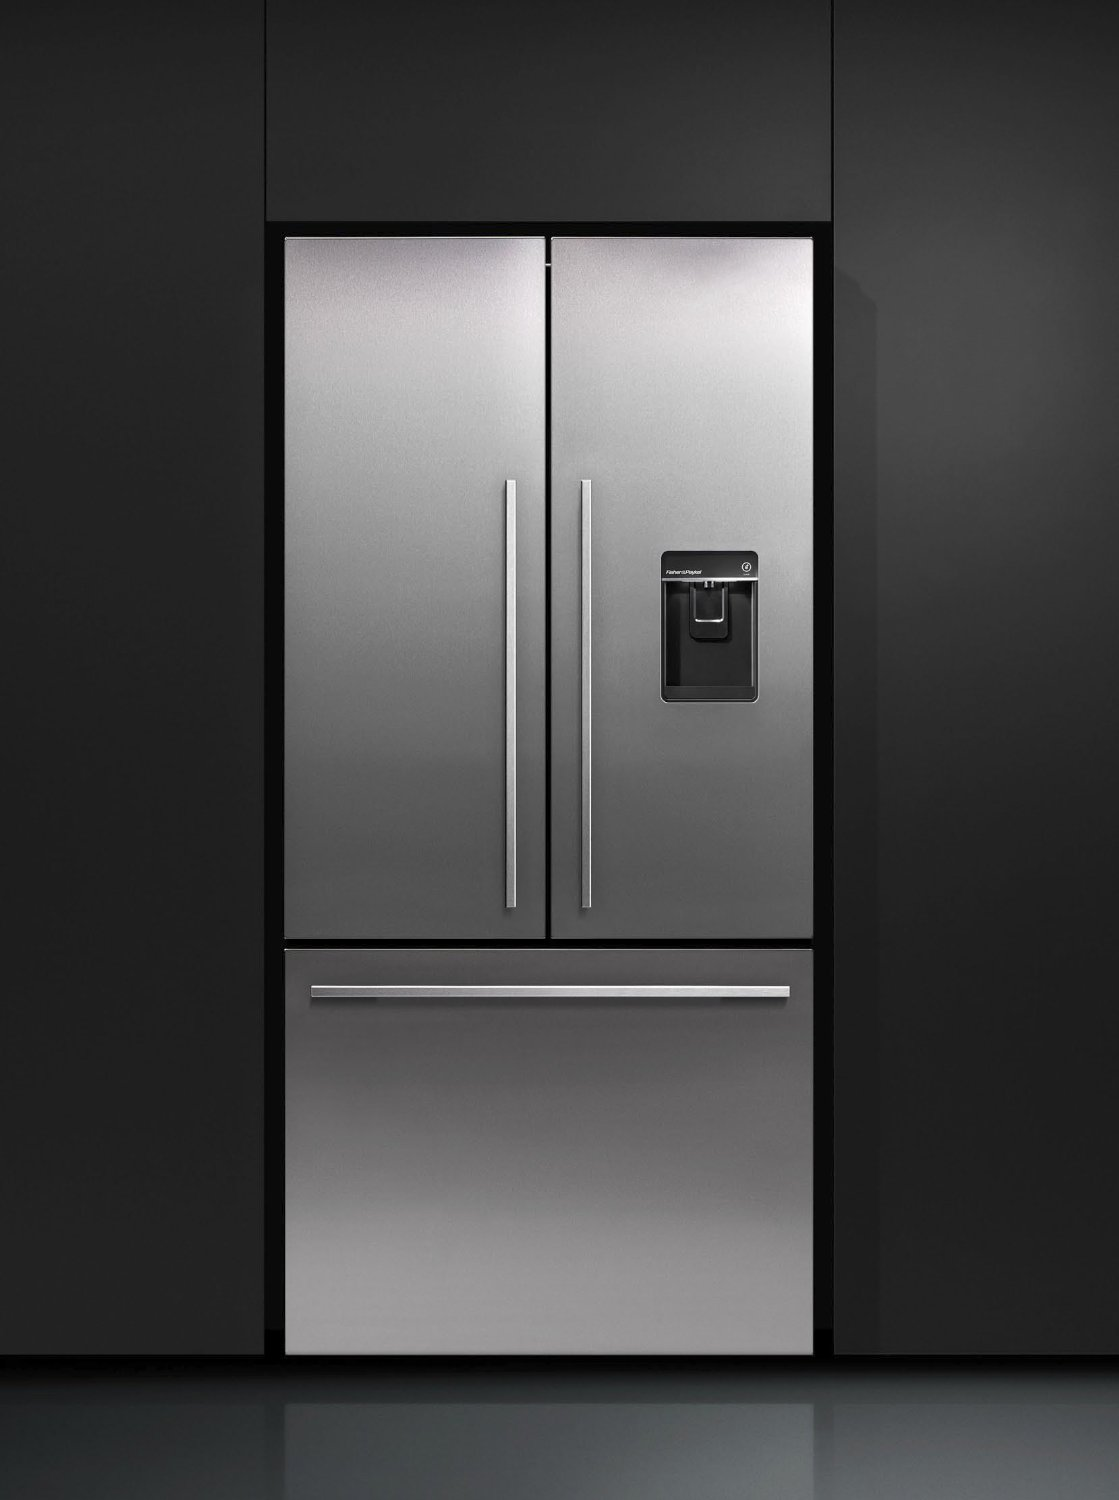 Fisher Paykel Rf170adusx4 17cuft Counter Depth French Door Review